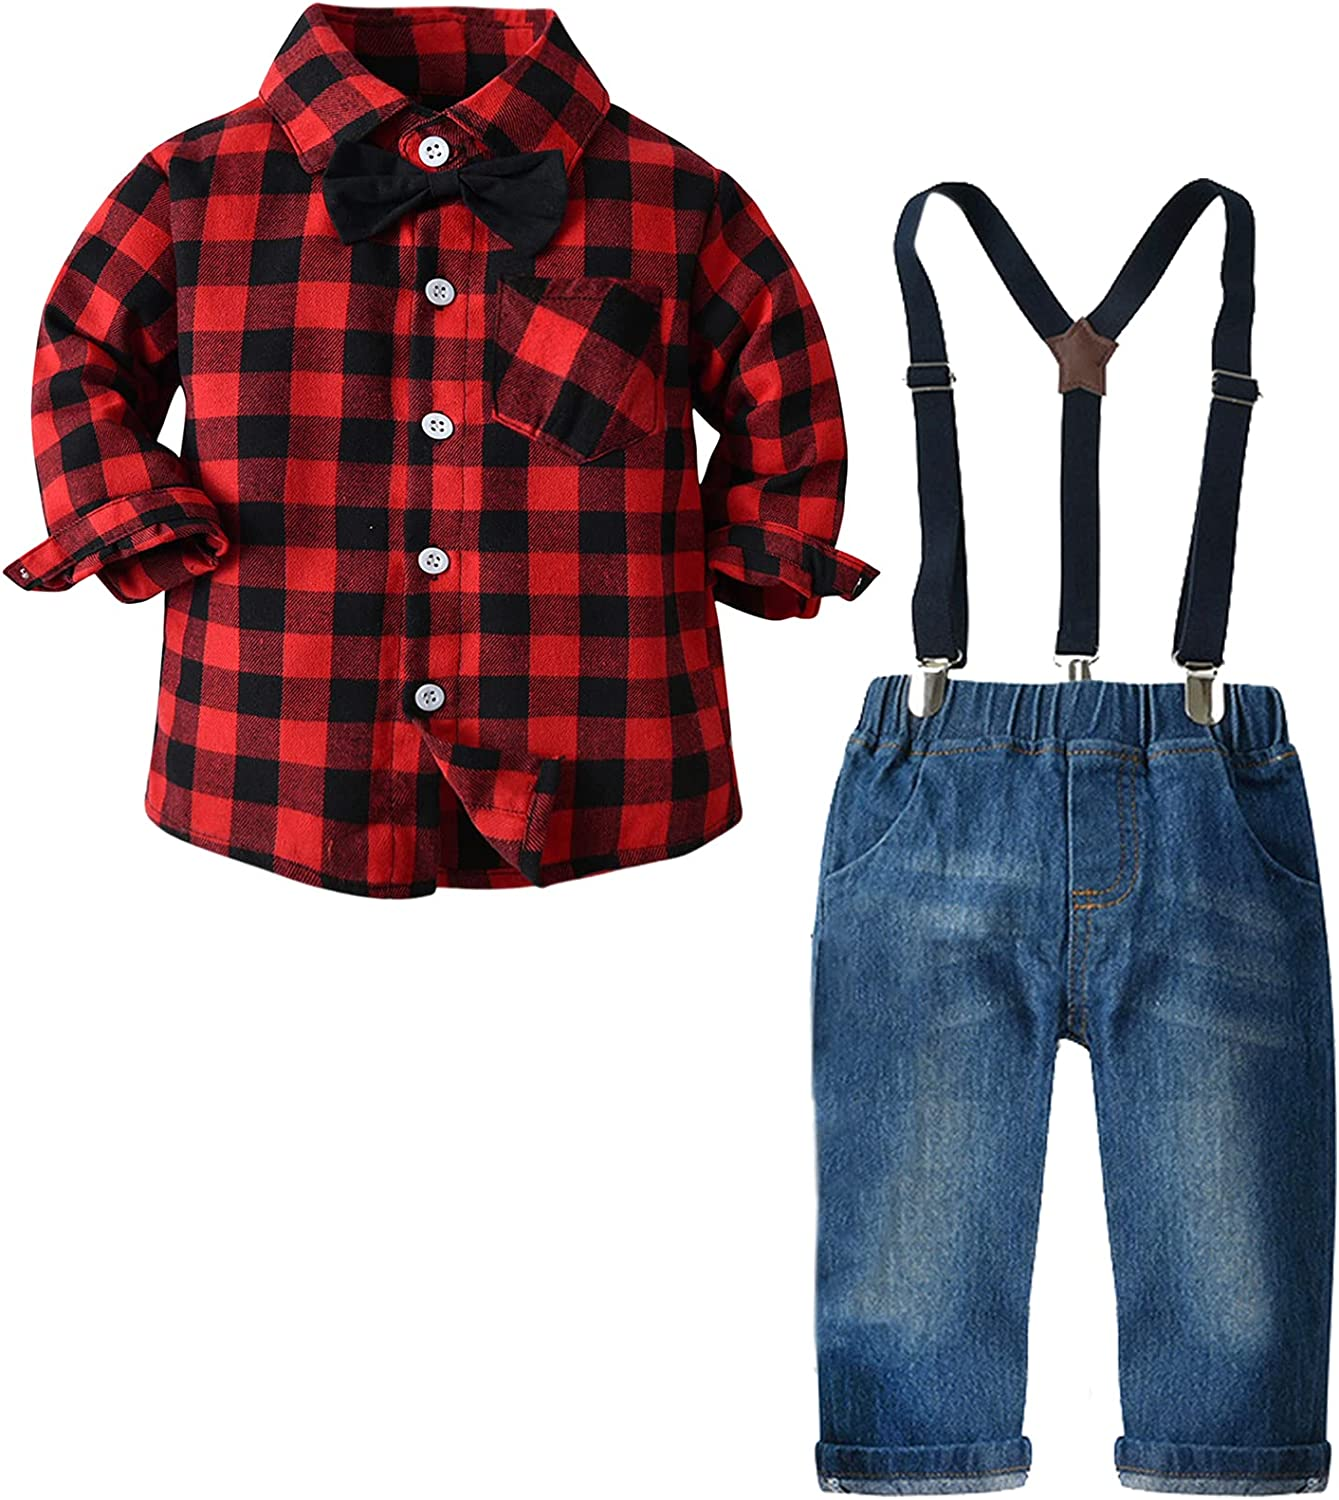 Baby Boy's Clothes, Long Sleeves Flannel Plaids Button Down Shirt with Bow Tie + Suspender Denim Jeans Pants Set Outfit, S02 Red Black Tag 130 = 4 - 5 Years